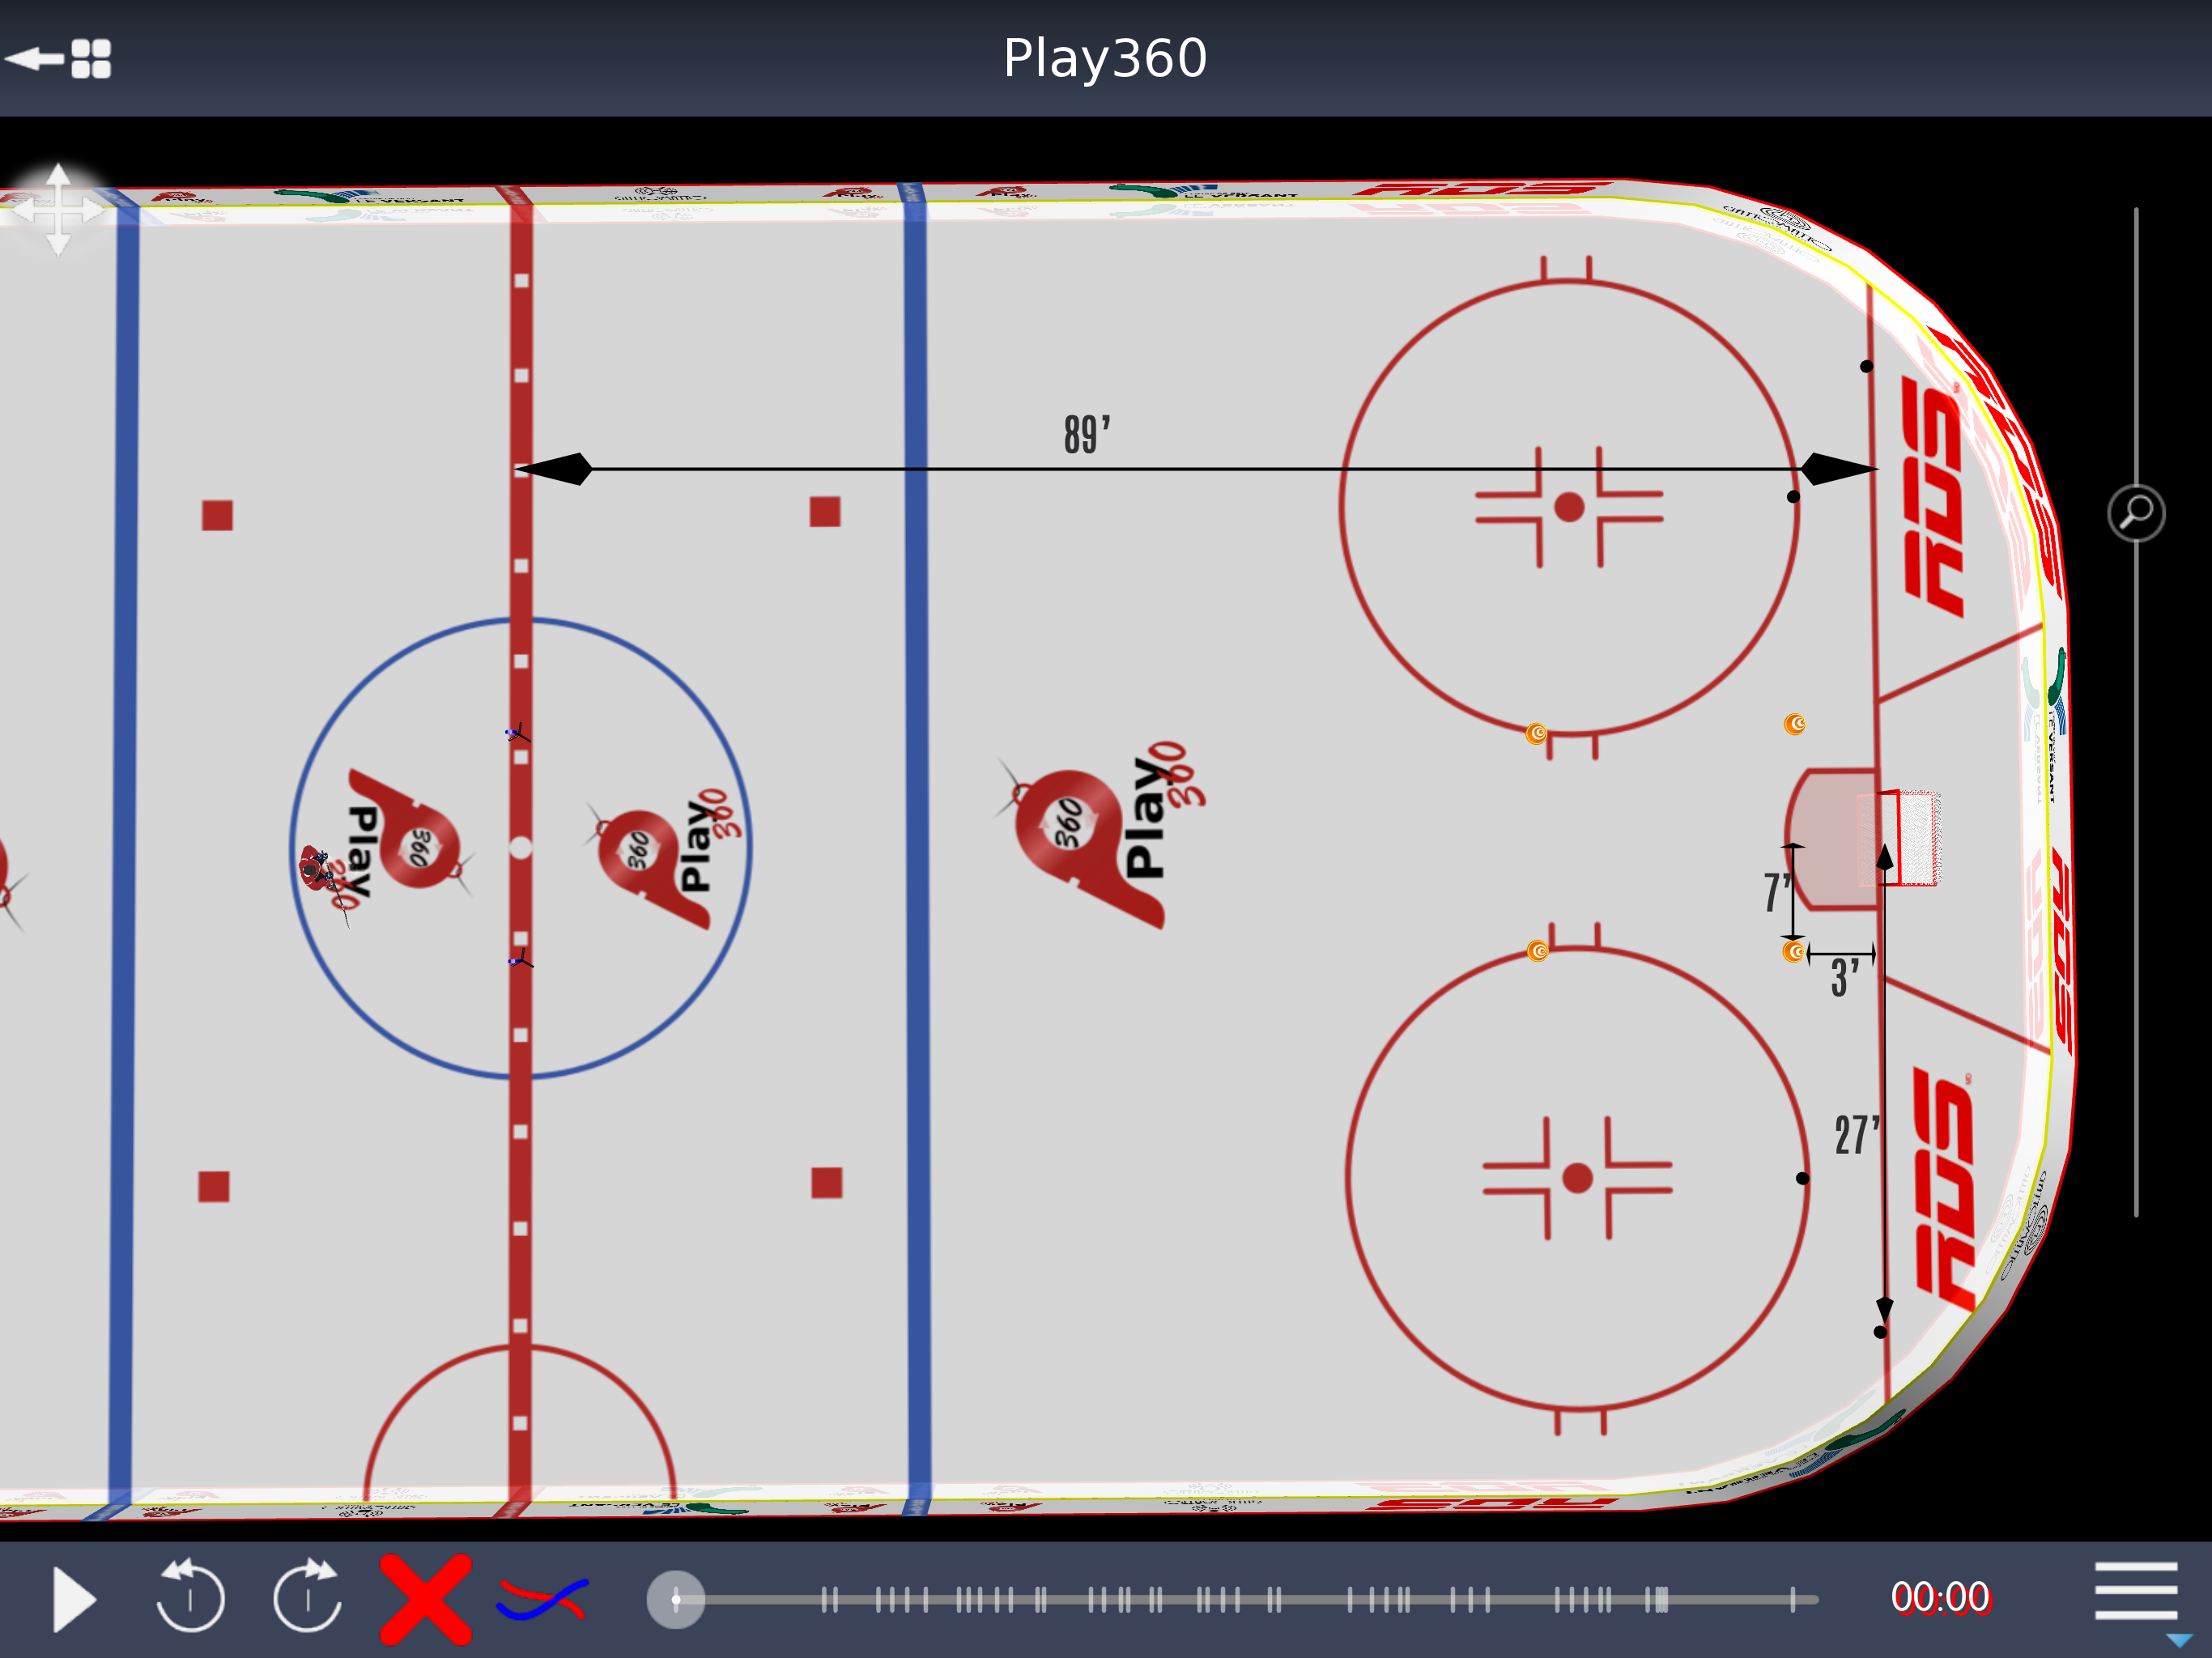 rink_play360_parcours_PDanault_2.png